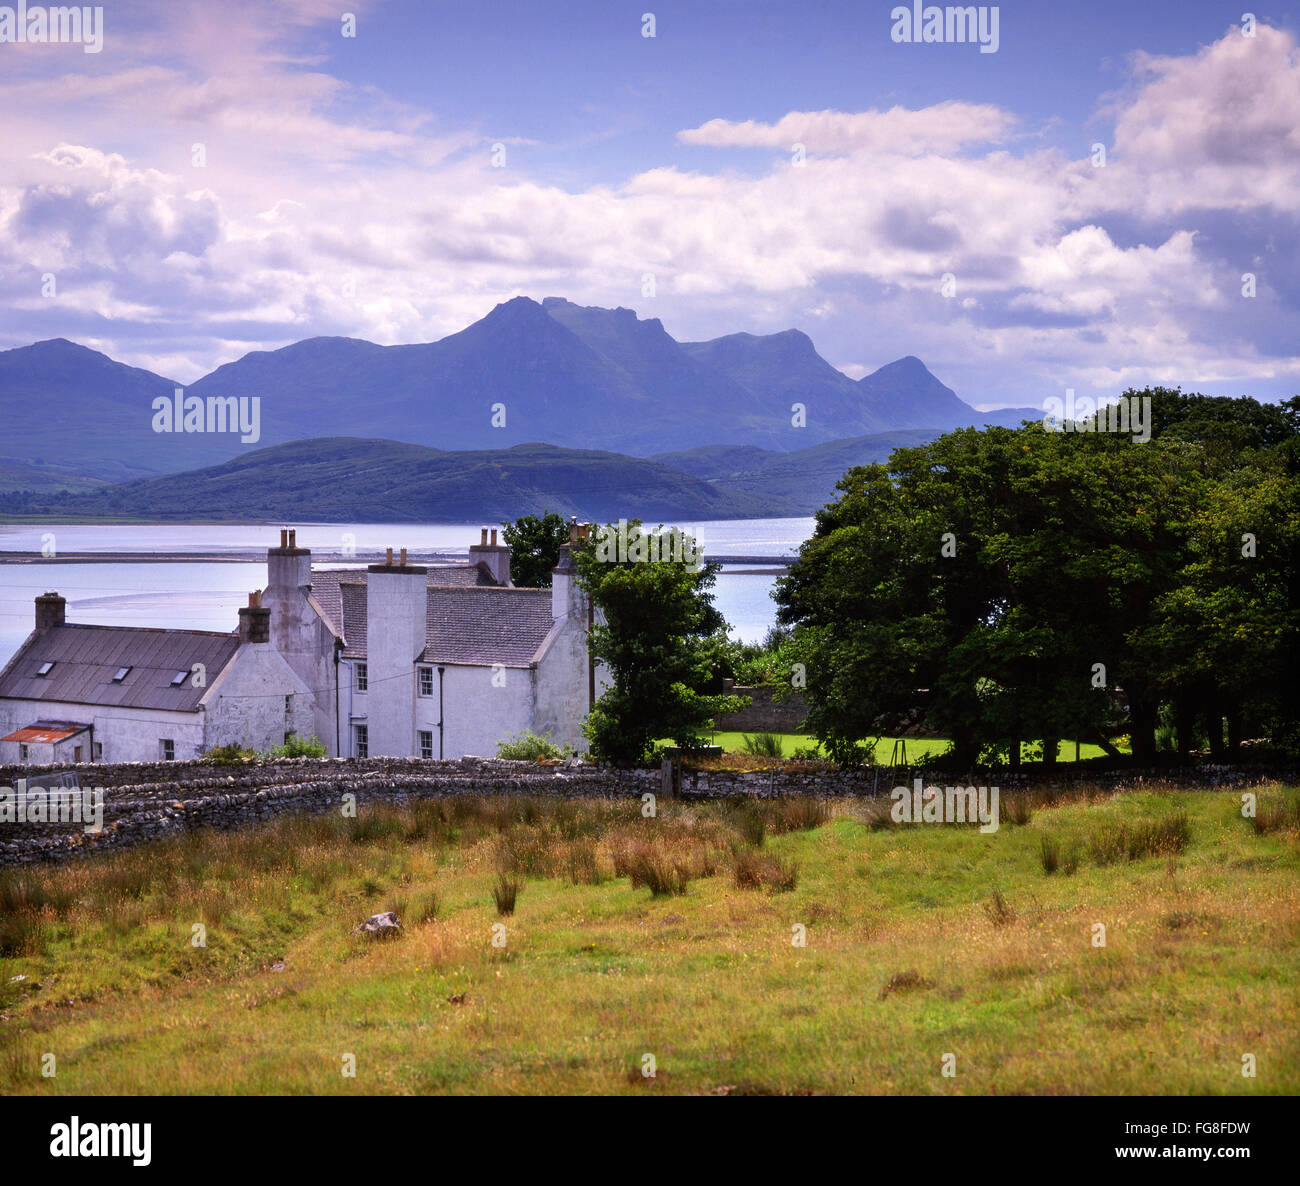 Kyle of Tongue with Ben Loyal in View, Tongue, N/W Highlands - Stock Image